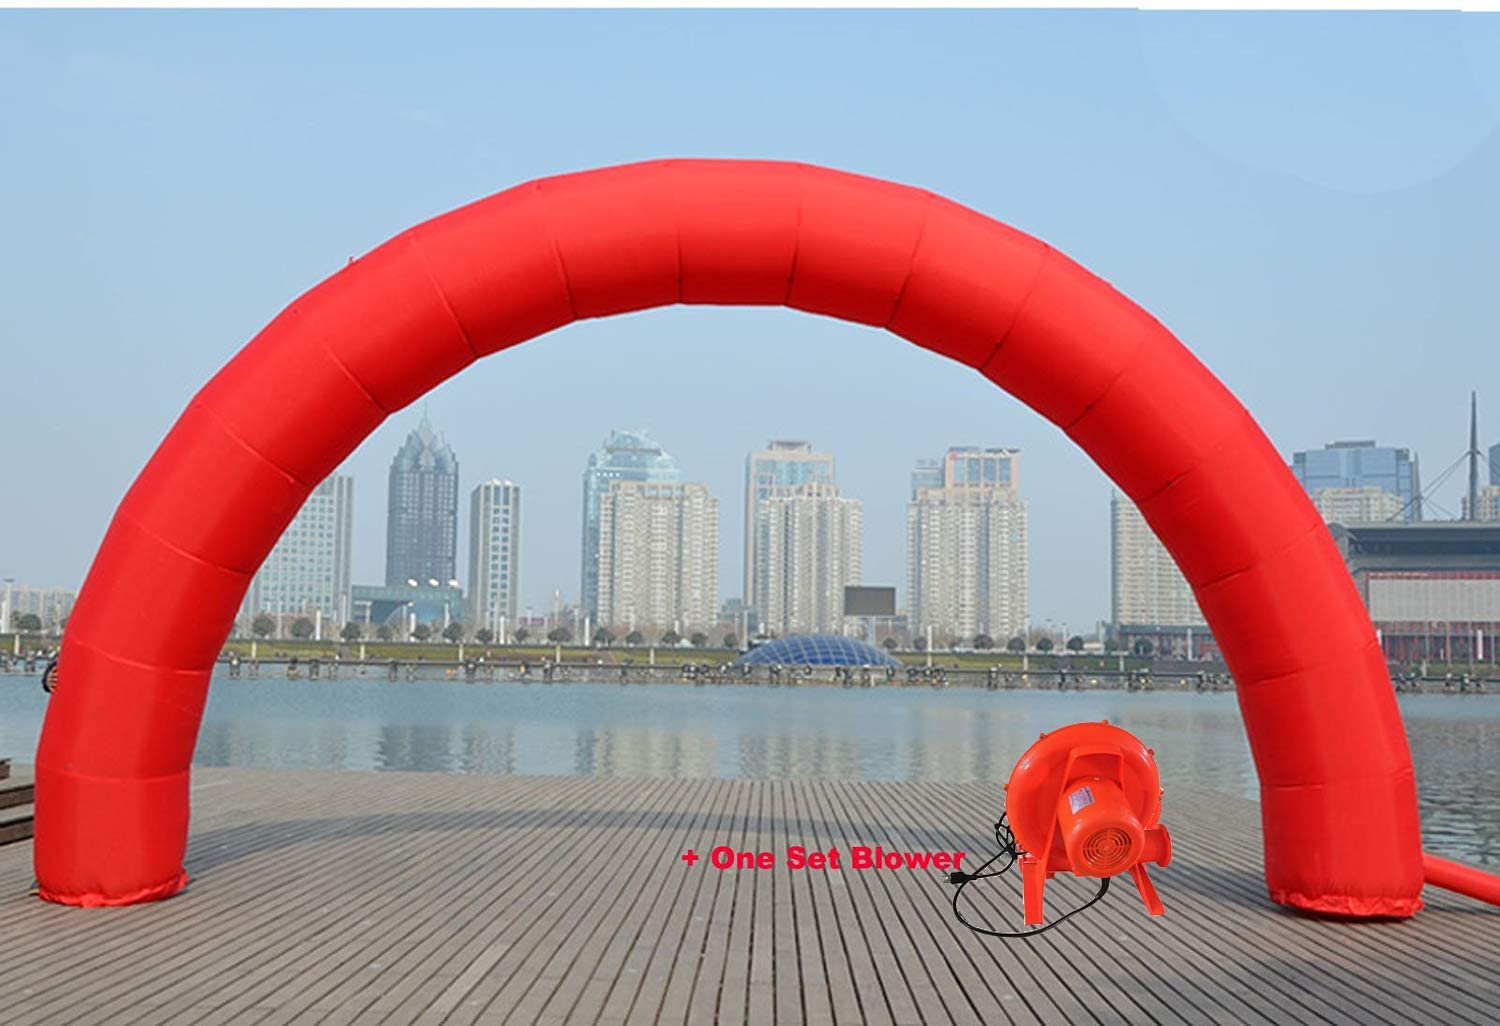 INTBUYING 19.6x9.8ft Red National uniform free shipping store Color Inflatable Advertising Arch with